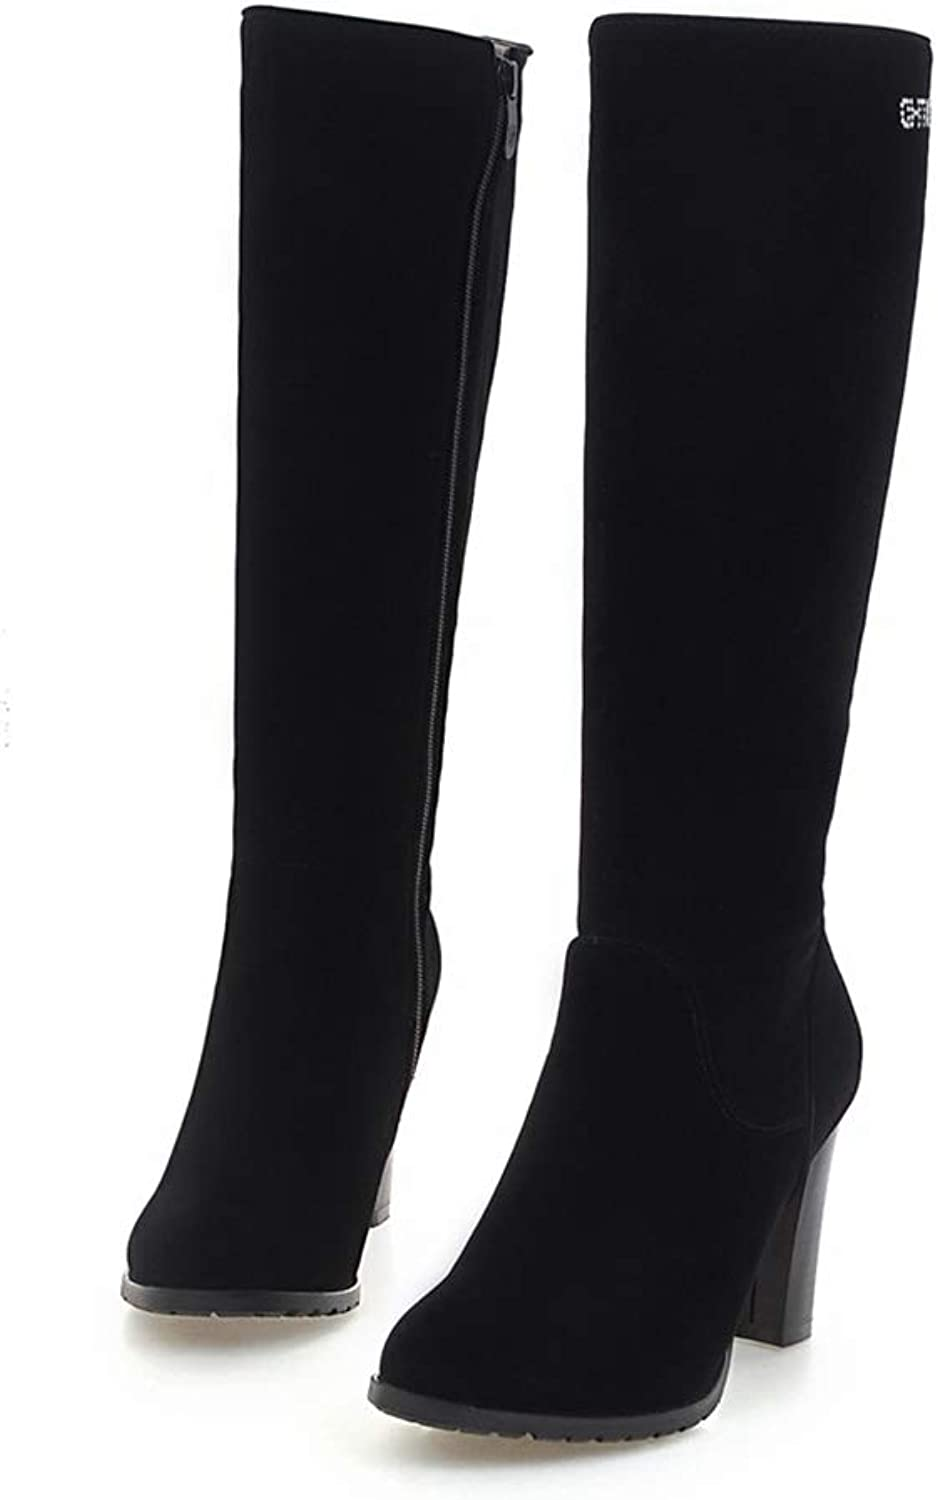 Trendy Knee-High Boots for Women Fashion Platform High Heels shoes Large Size 34-43